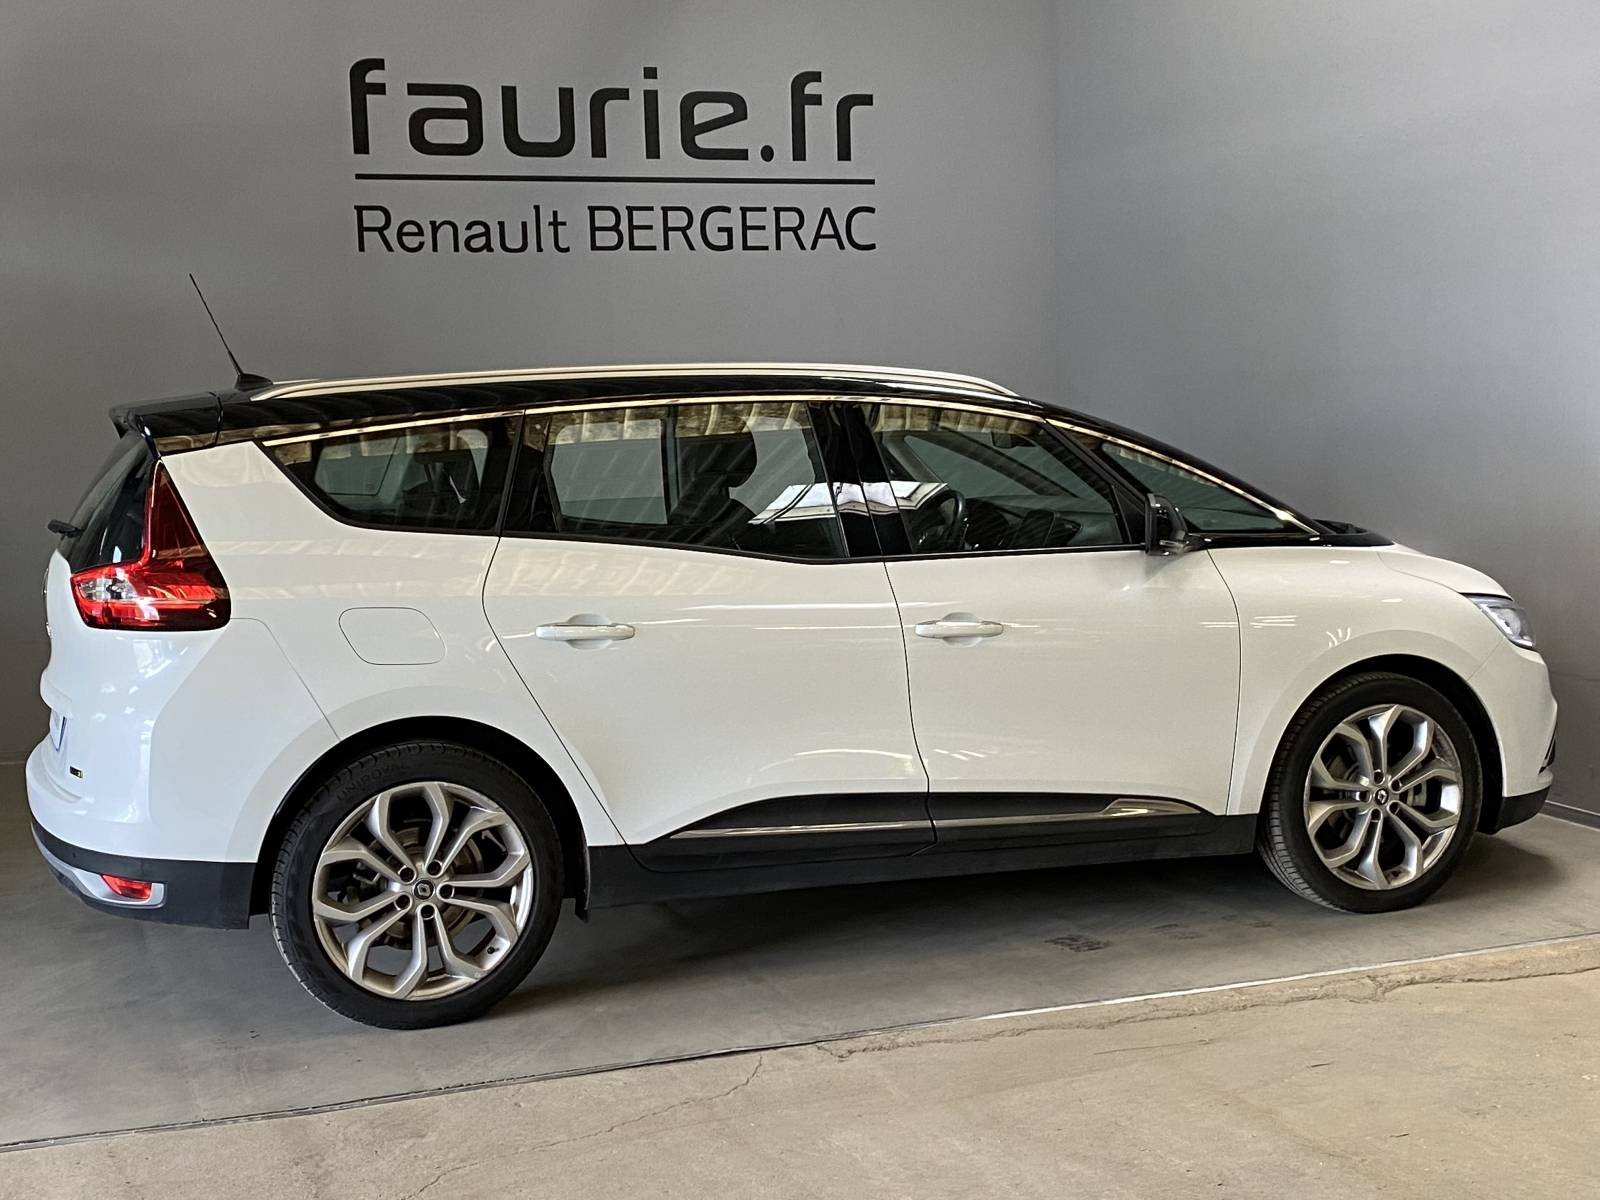 RENAULT Grand Scénic dCi 110 Energy EDC - véhicule d'occasion - Site Internet Faurie - Renault - Faurie Auto Bergerac - 24100 - Bergerac - 4